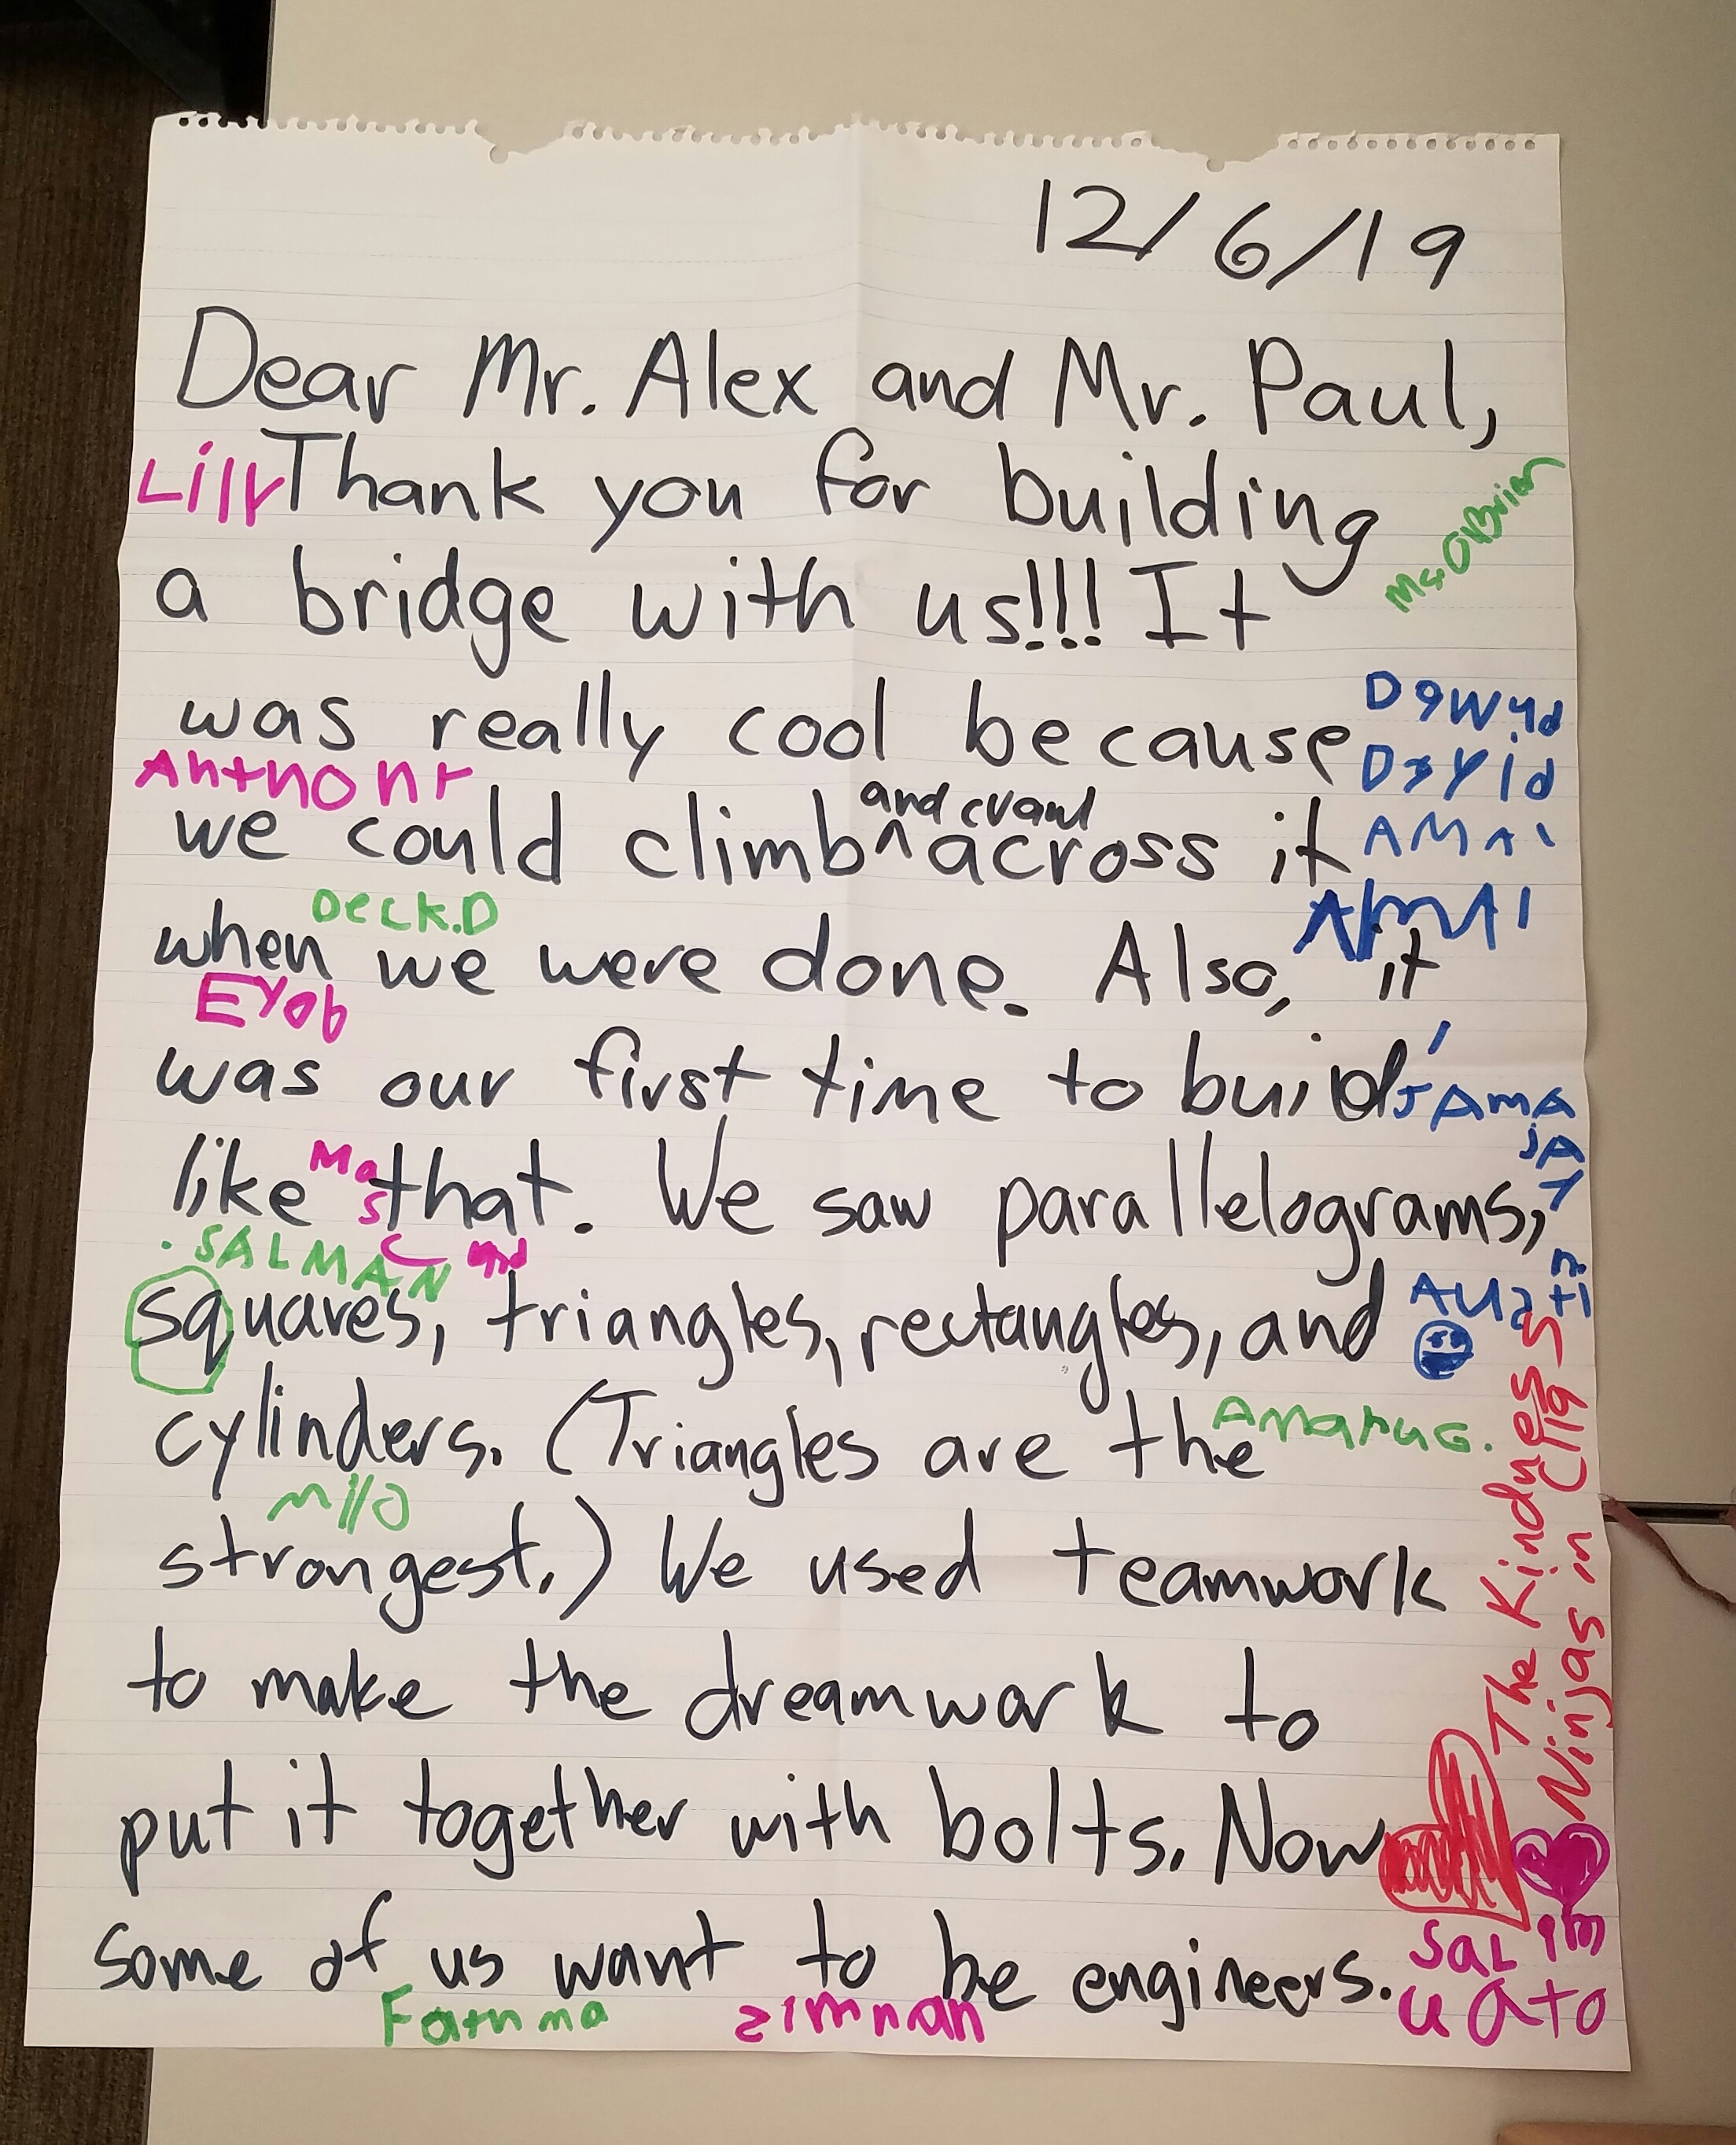 Photo: thank-you note in children's handwriting which says dear mr alex and mr paul, thank you for building a bridge with us. It was really cool because we could climb and crawl across it when we were done. Also, it was our first time to build something like that. We saw paralellograms, squares, triangles, rectangles and cylinders. Triangles are the strongest. We used teamwork to make the dreamwork to put it together with bolts. Now some of us want to be engineers.